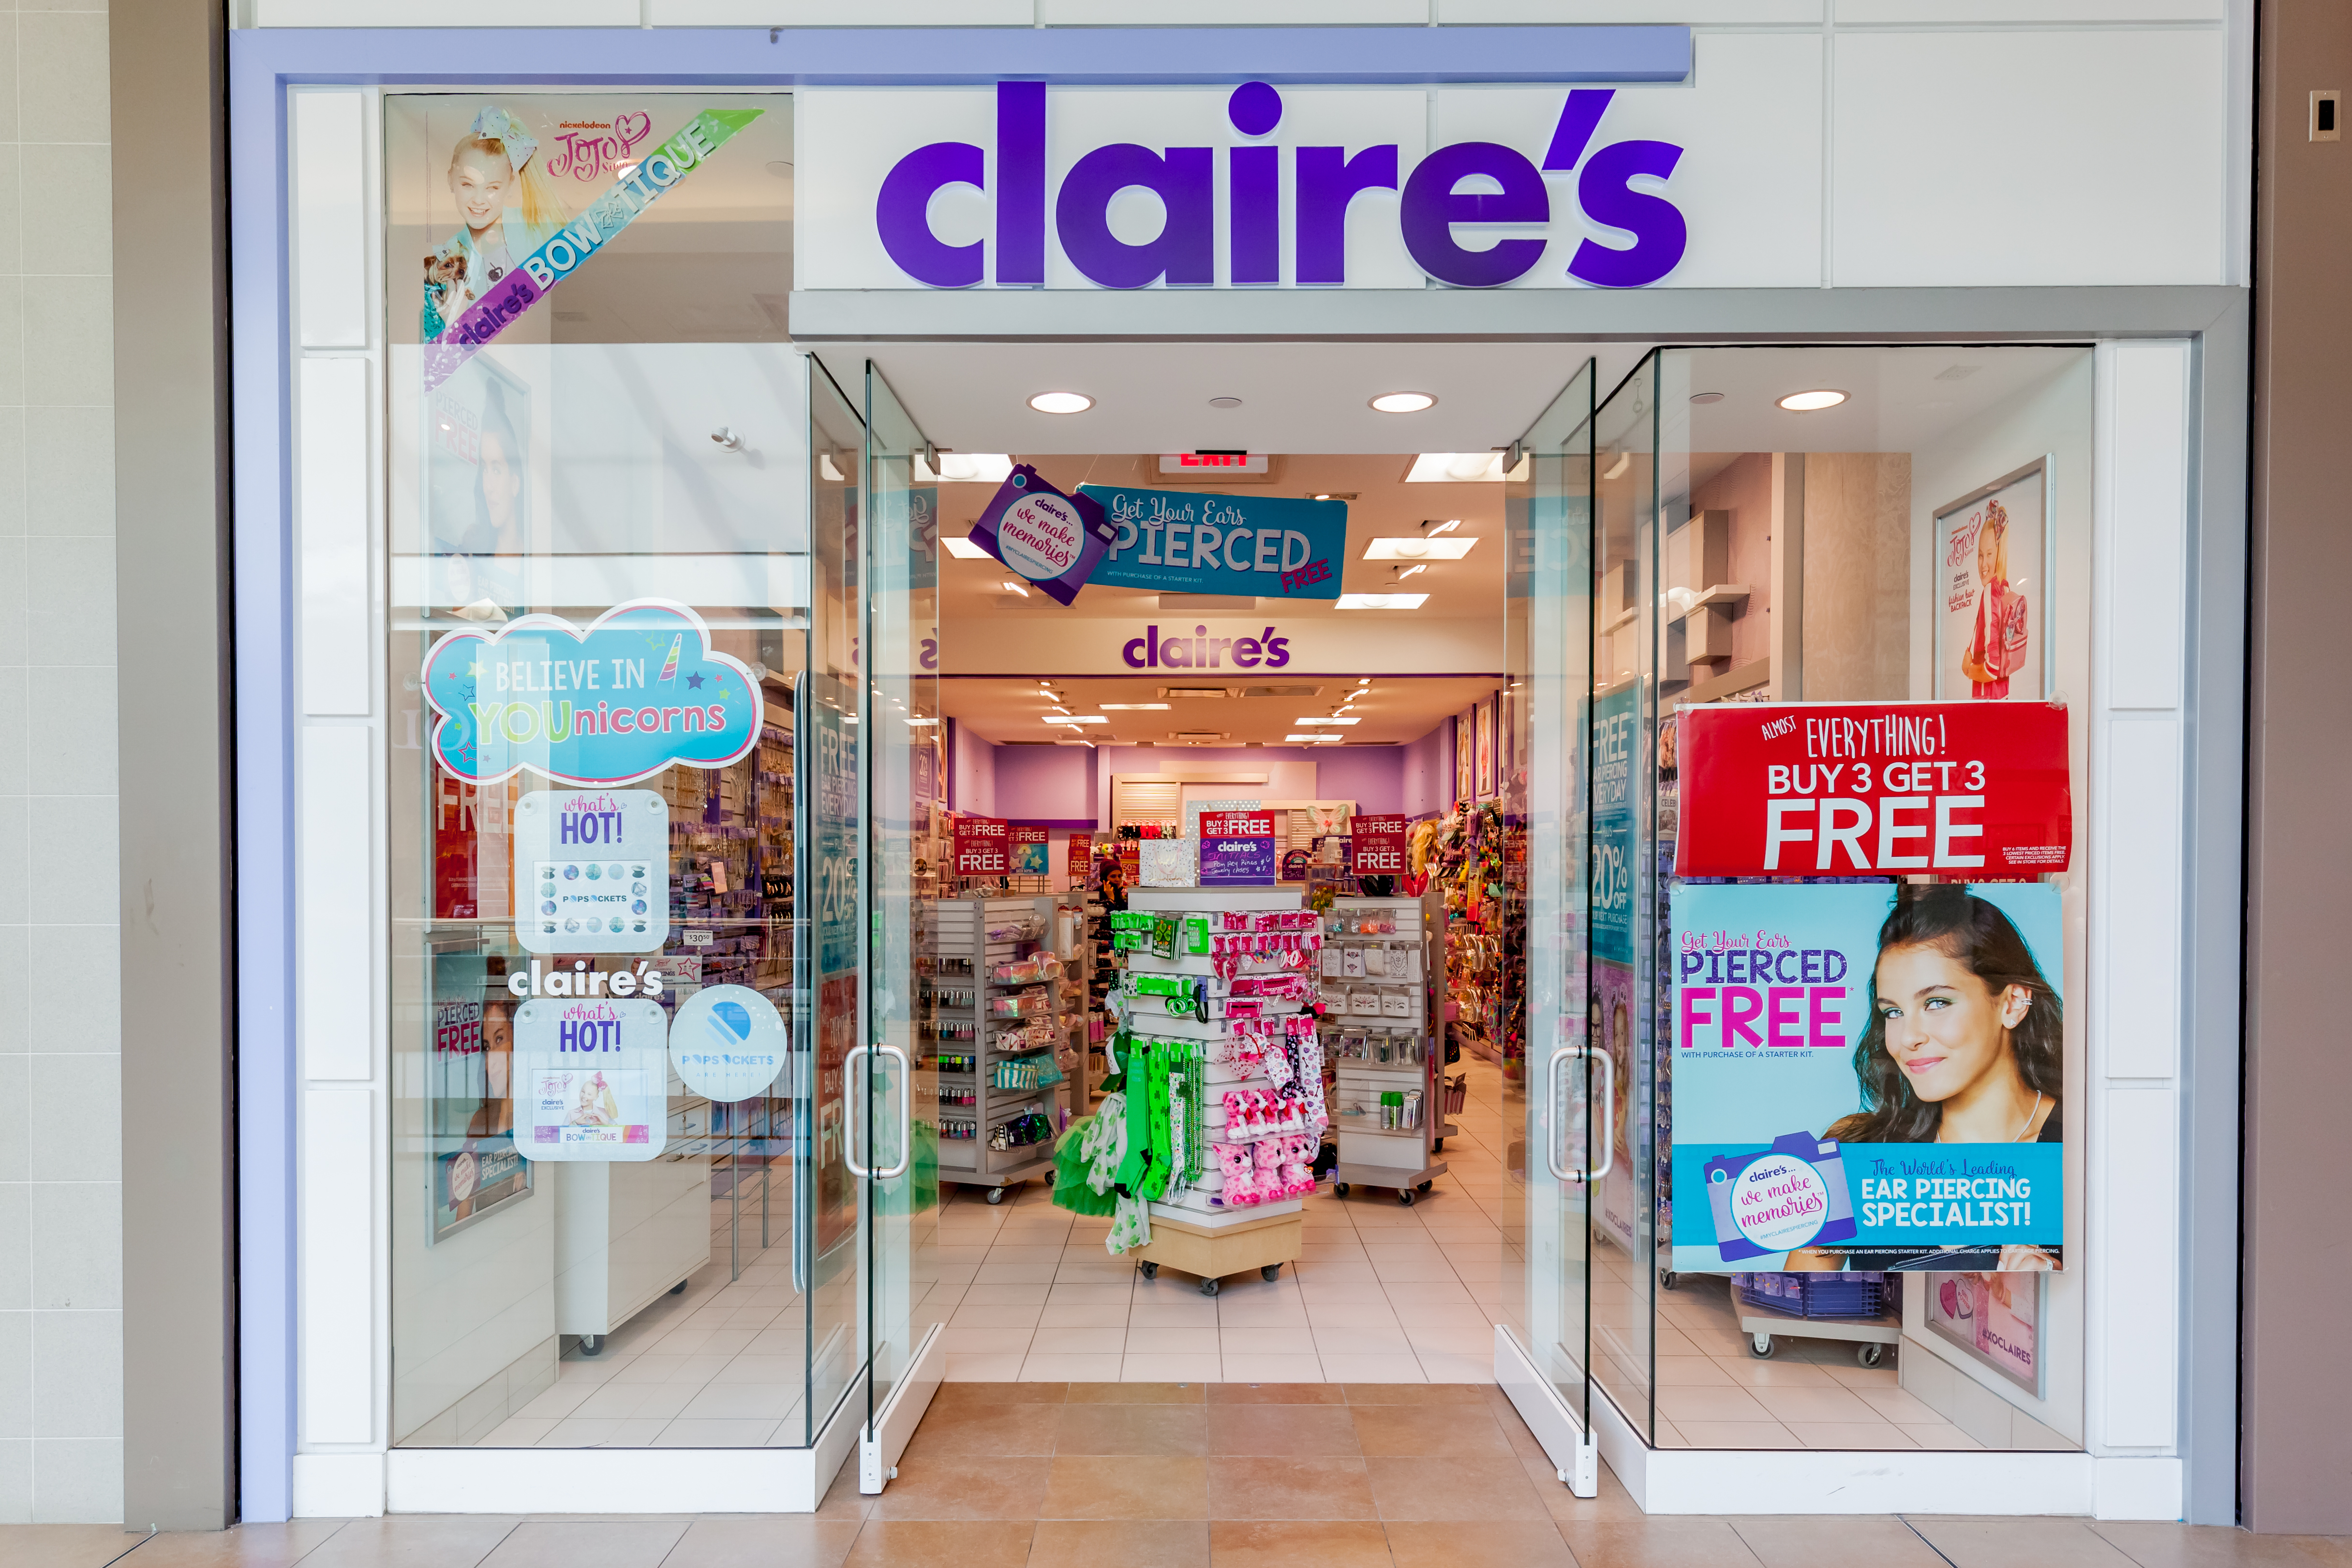 A Claire's storefront.